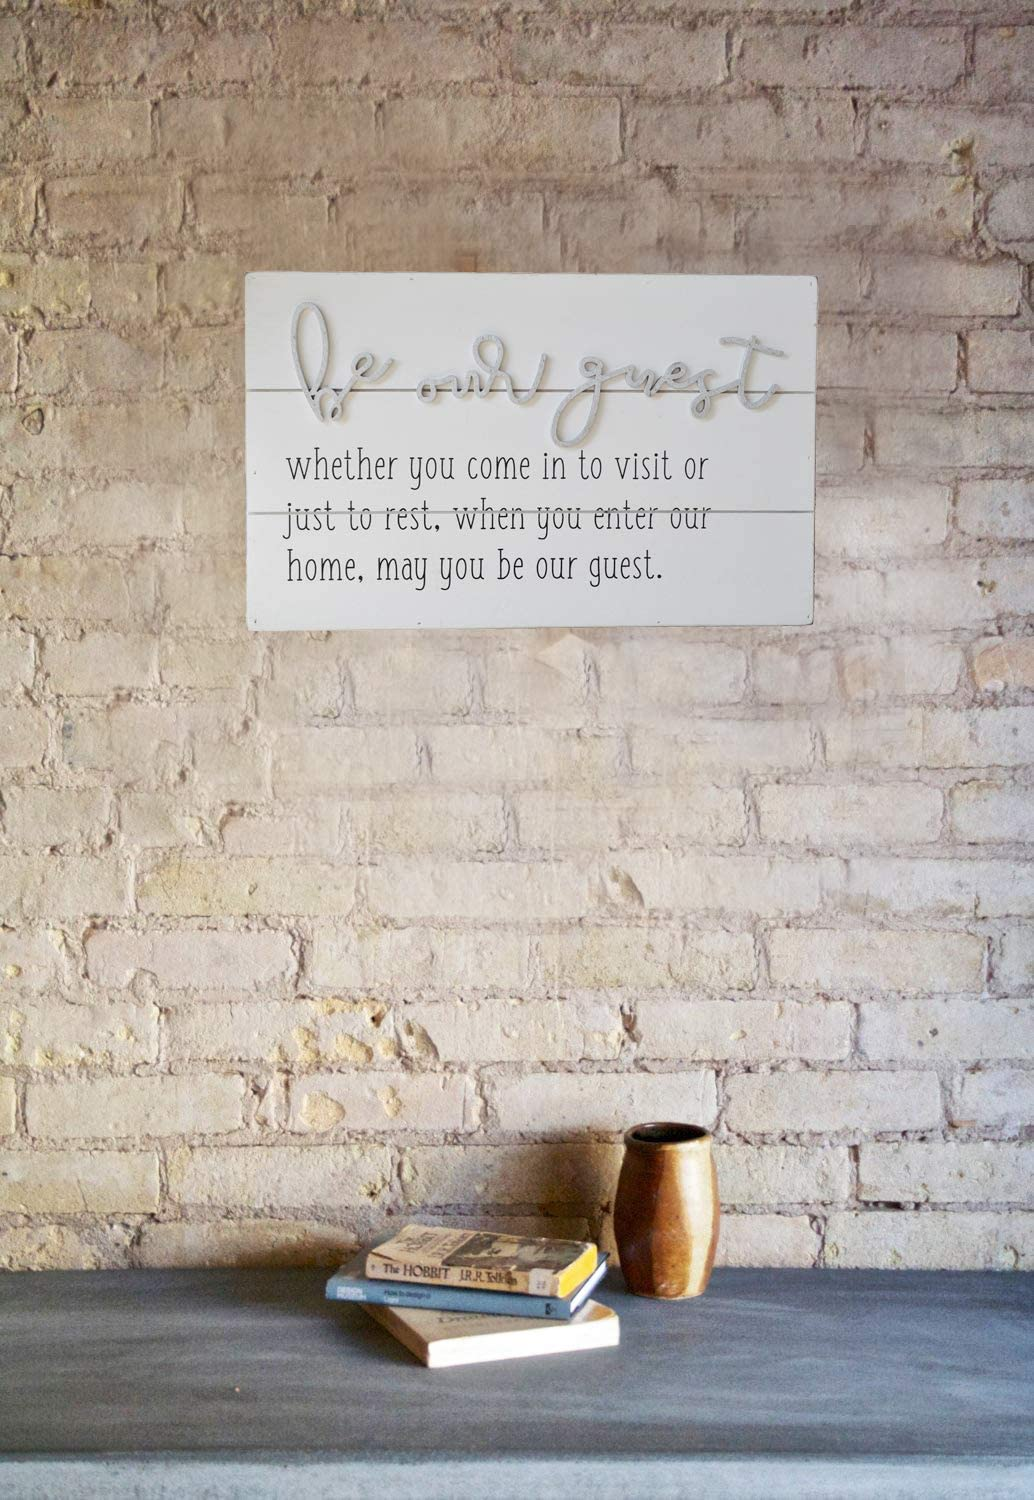 GIFTME 5 Wooden Wall Art Be Our Guest Metal Sign Wood Wall Plaque Signs Guest Room Home D/écor